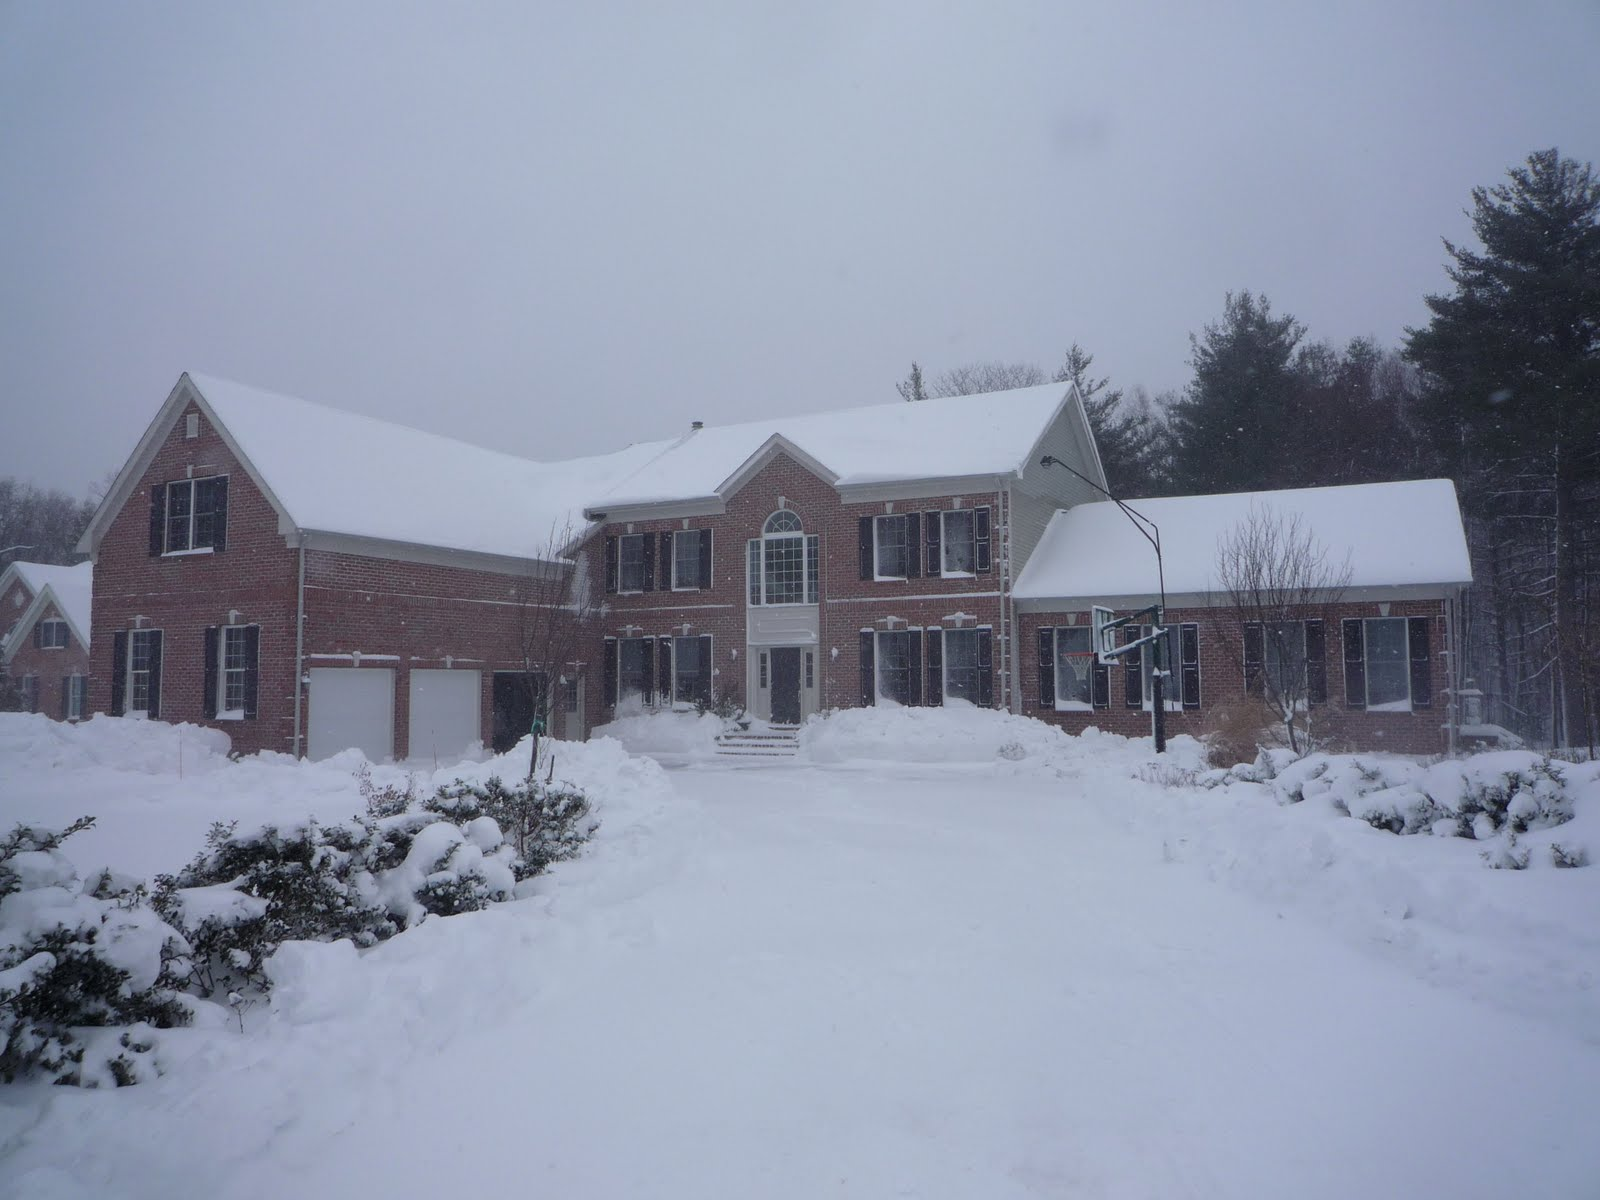 The New House In Snow